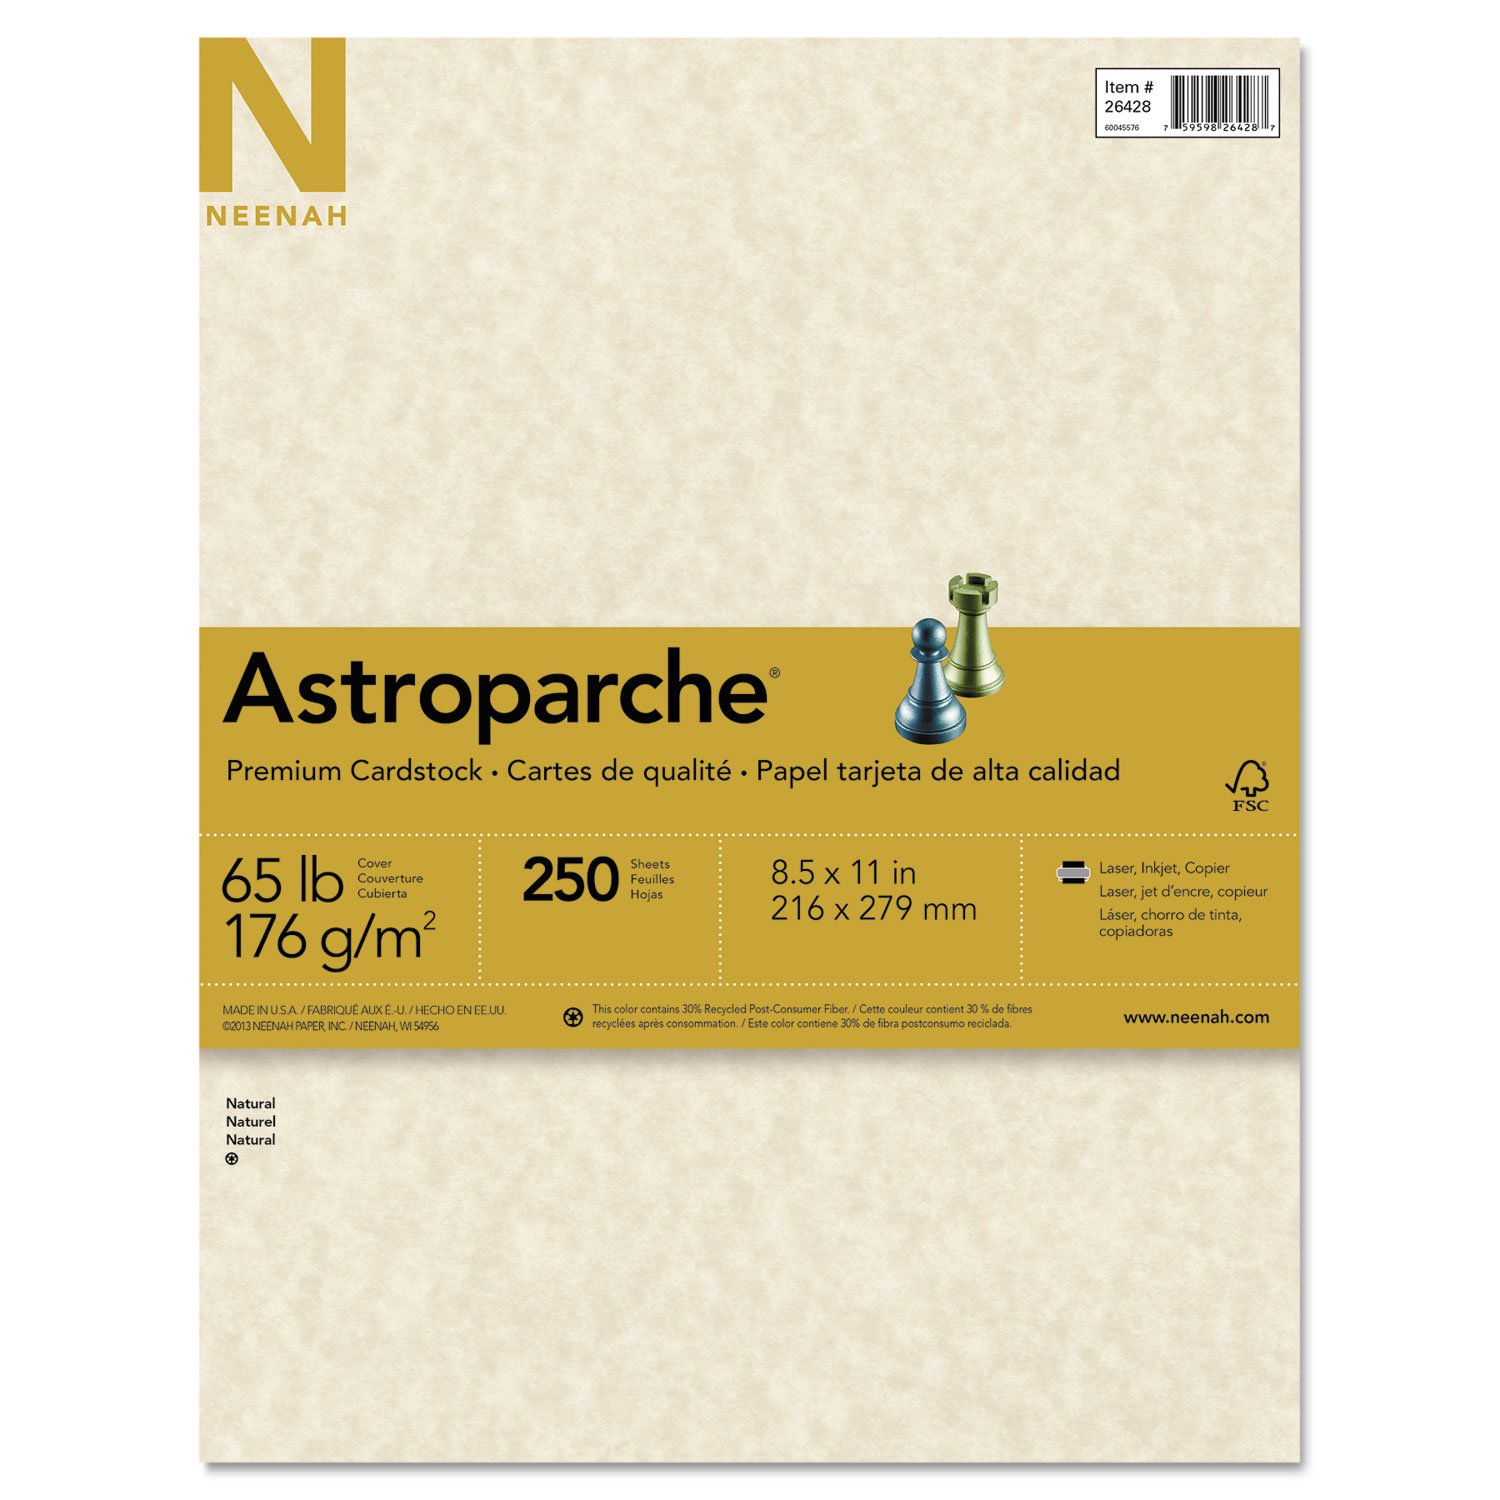 Neenah Paper 26428 Astroparche Specialty Card Stock, 65lb, 8 1/2 x 11, Natural, 250 Sheets by Wausau